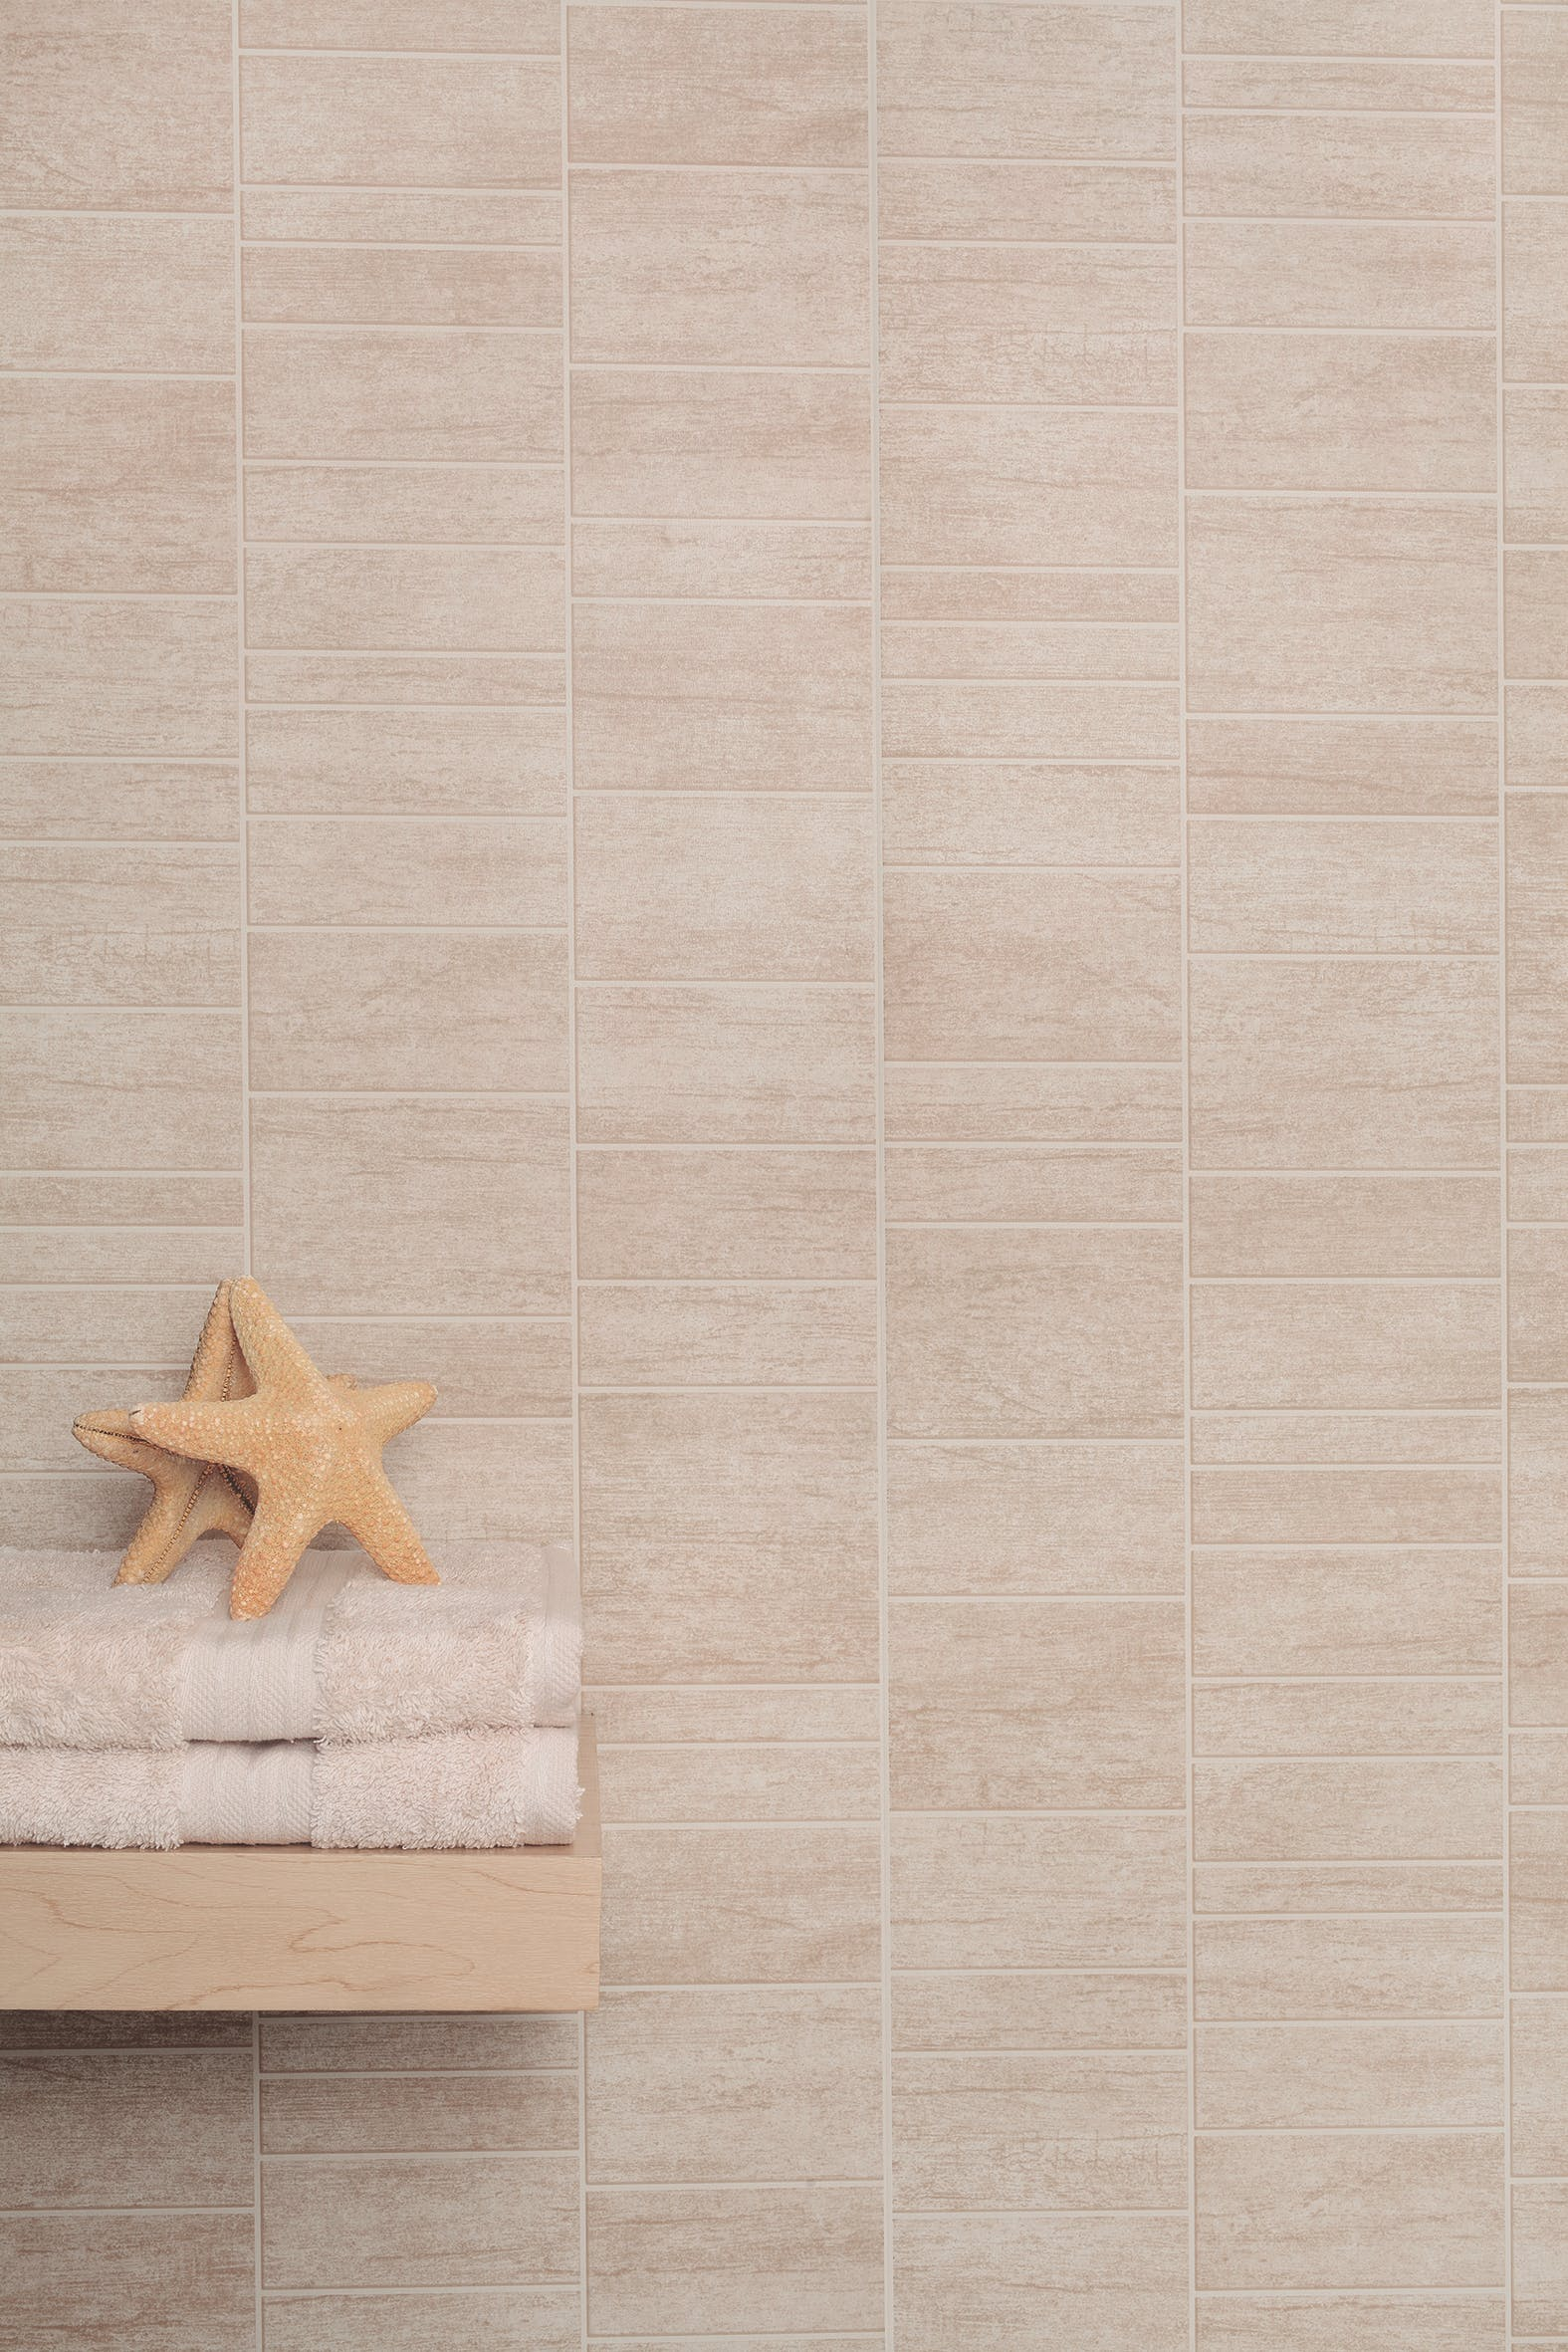 Vari-Fit Sandstone Beige PVC Small Tile Wall Panel (2440mm x 375mm x 8mm)